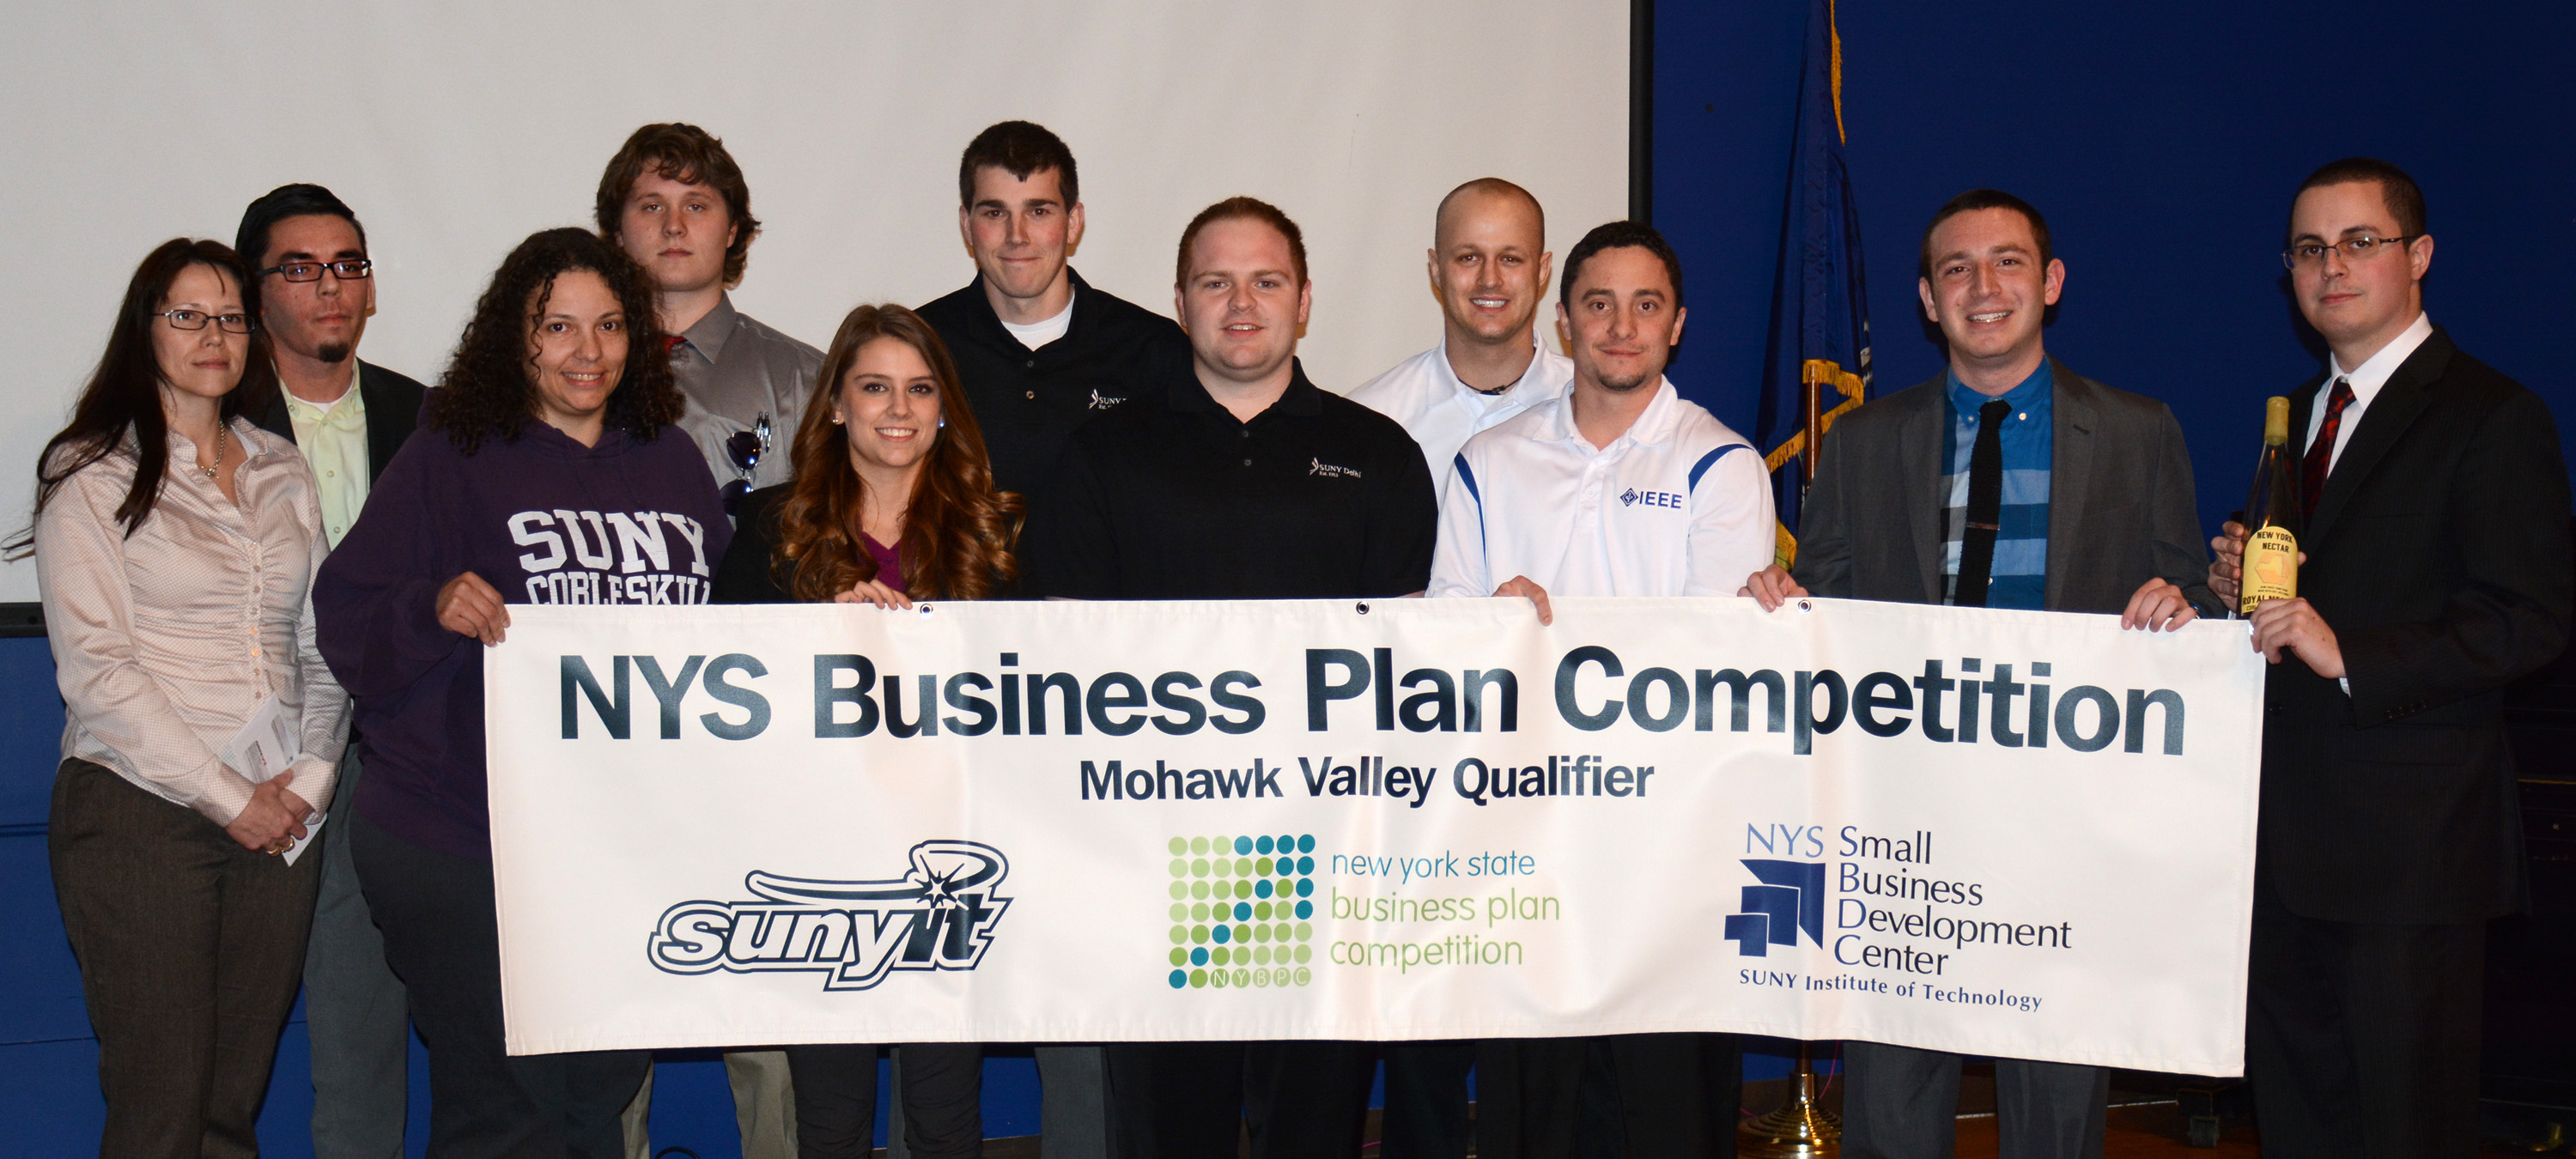 Sam Matlick '17, far right, with other contestants in the SUNY IT Business Plan Competition.